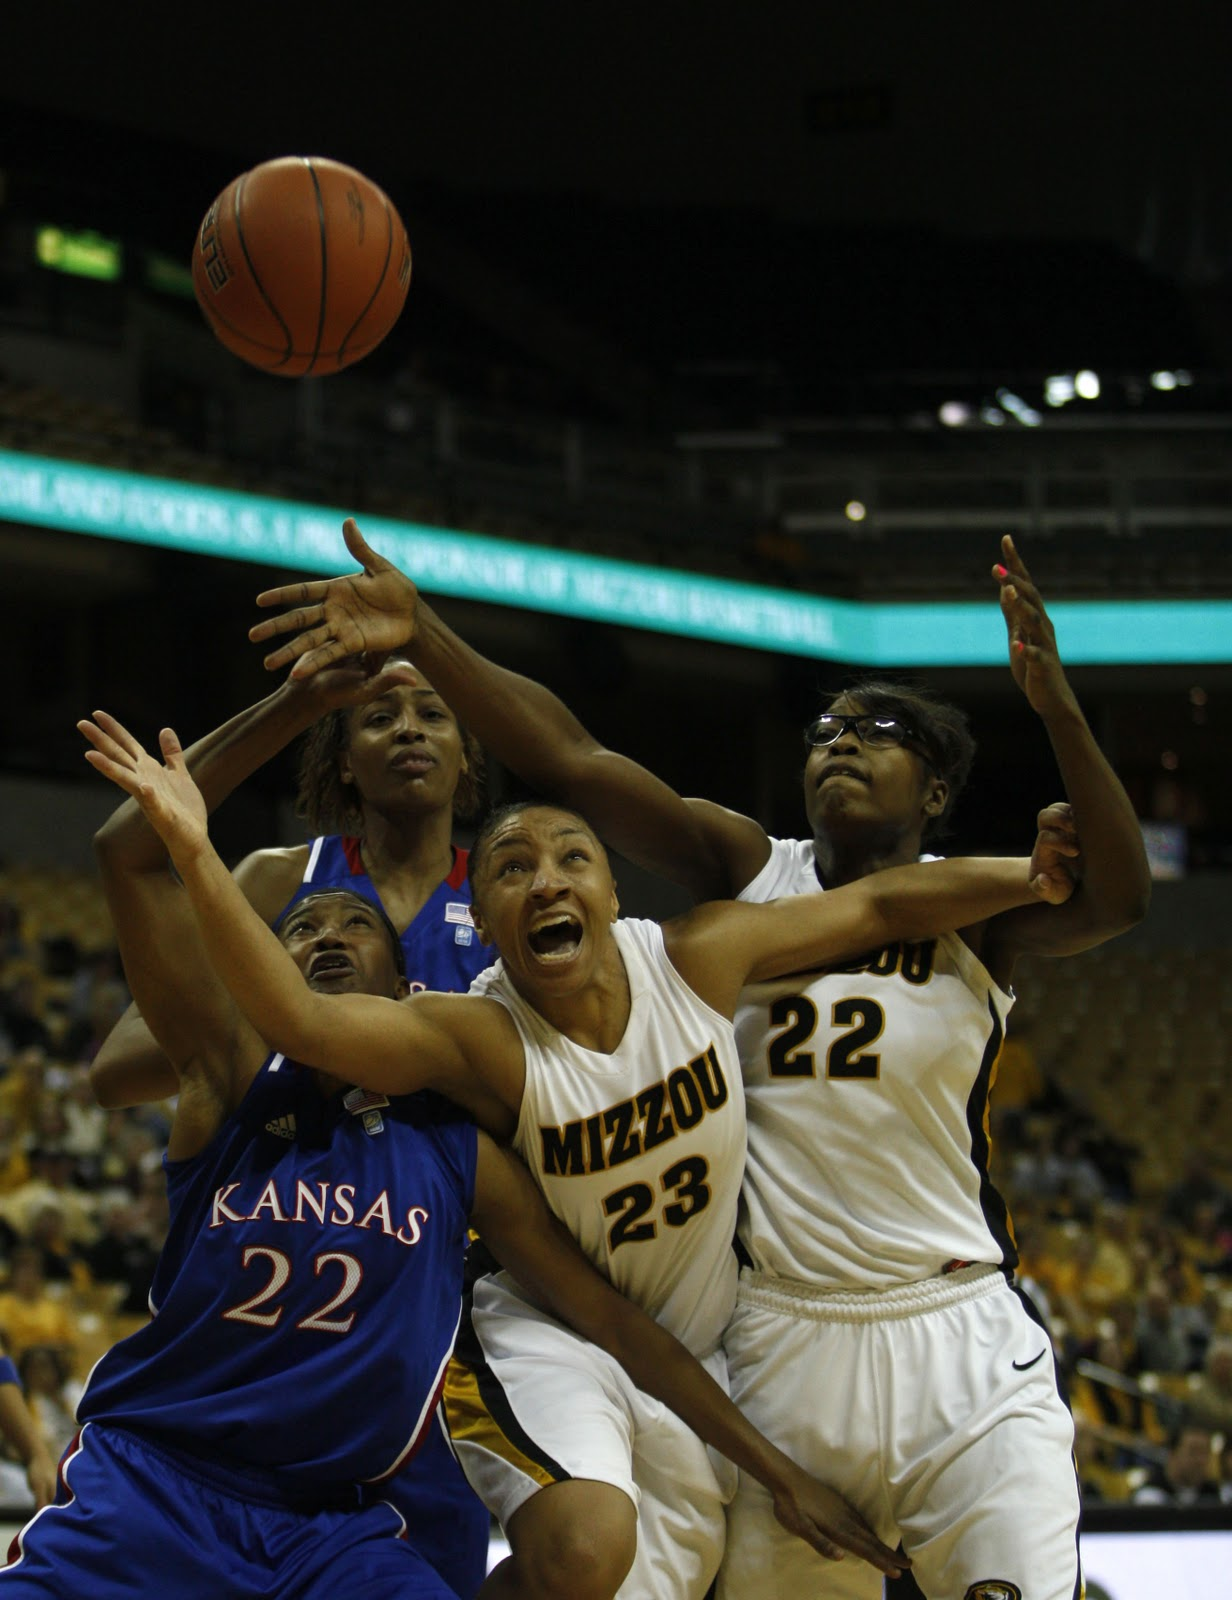 Sarah Hoffman Photo: Mizzou Women's Basketball vs. Kansas